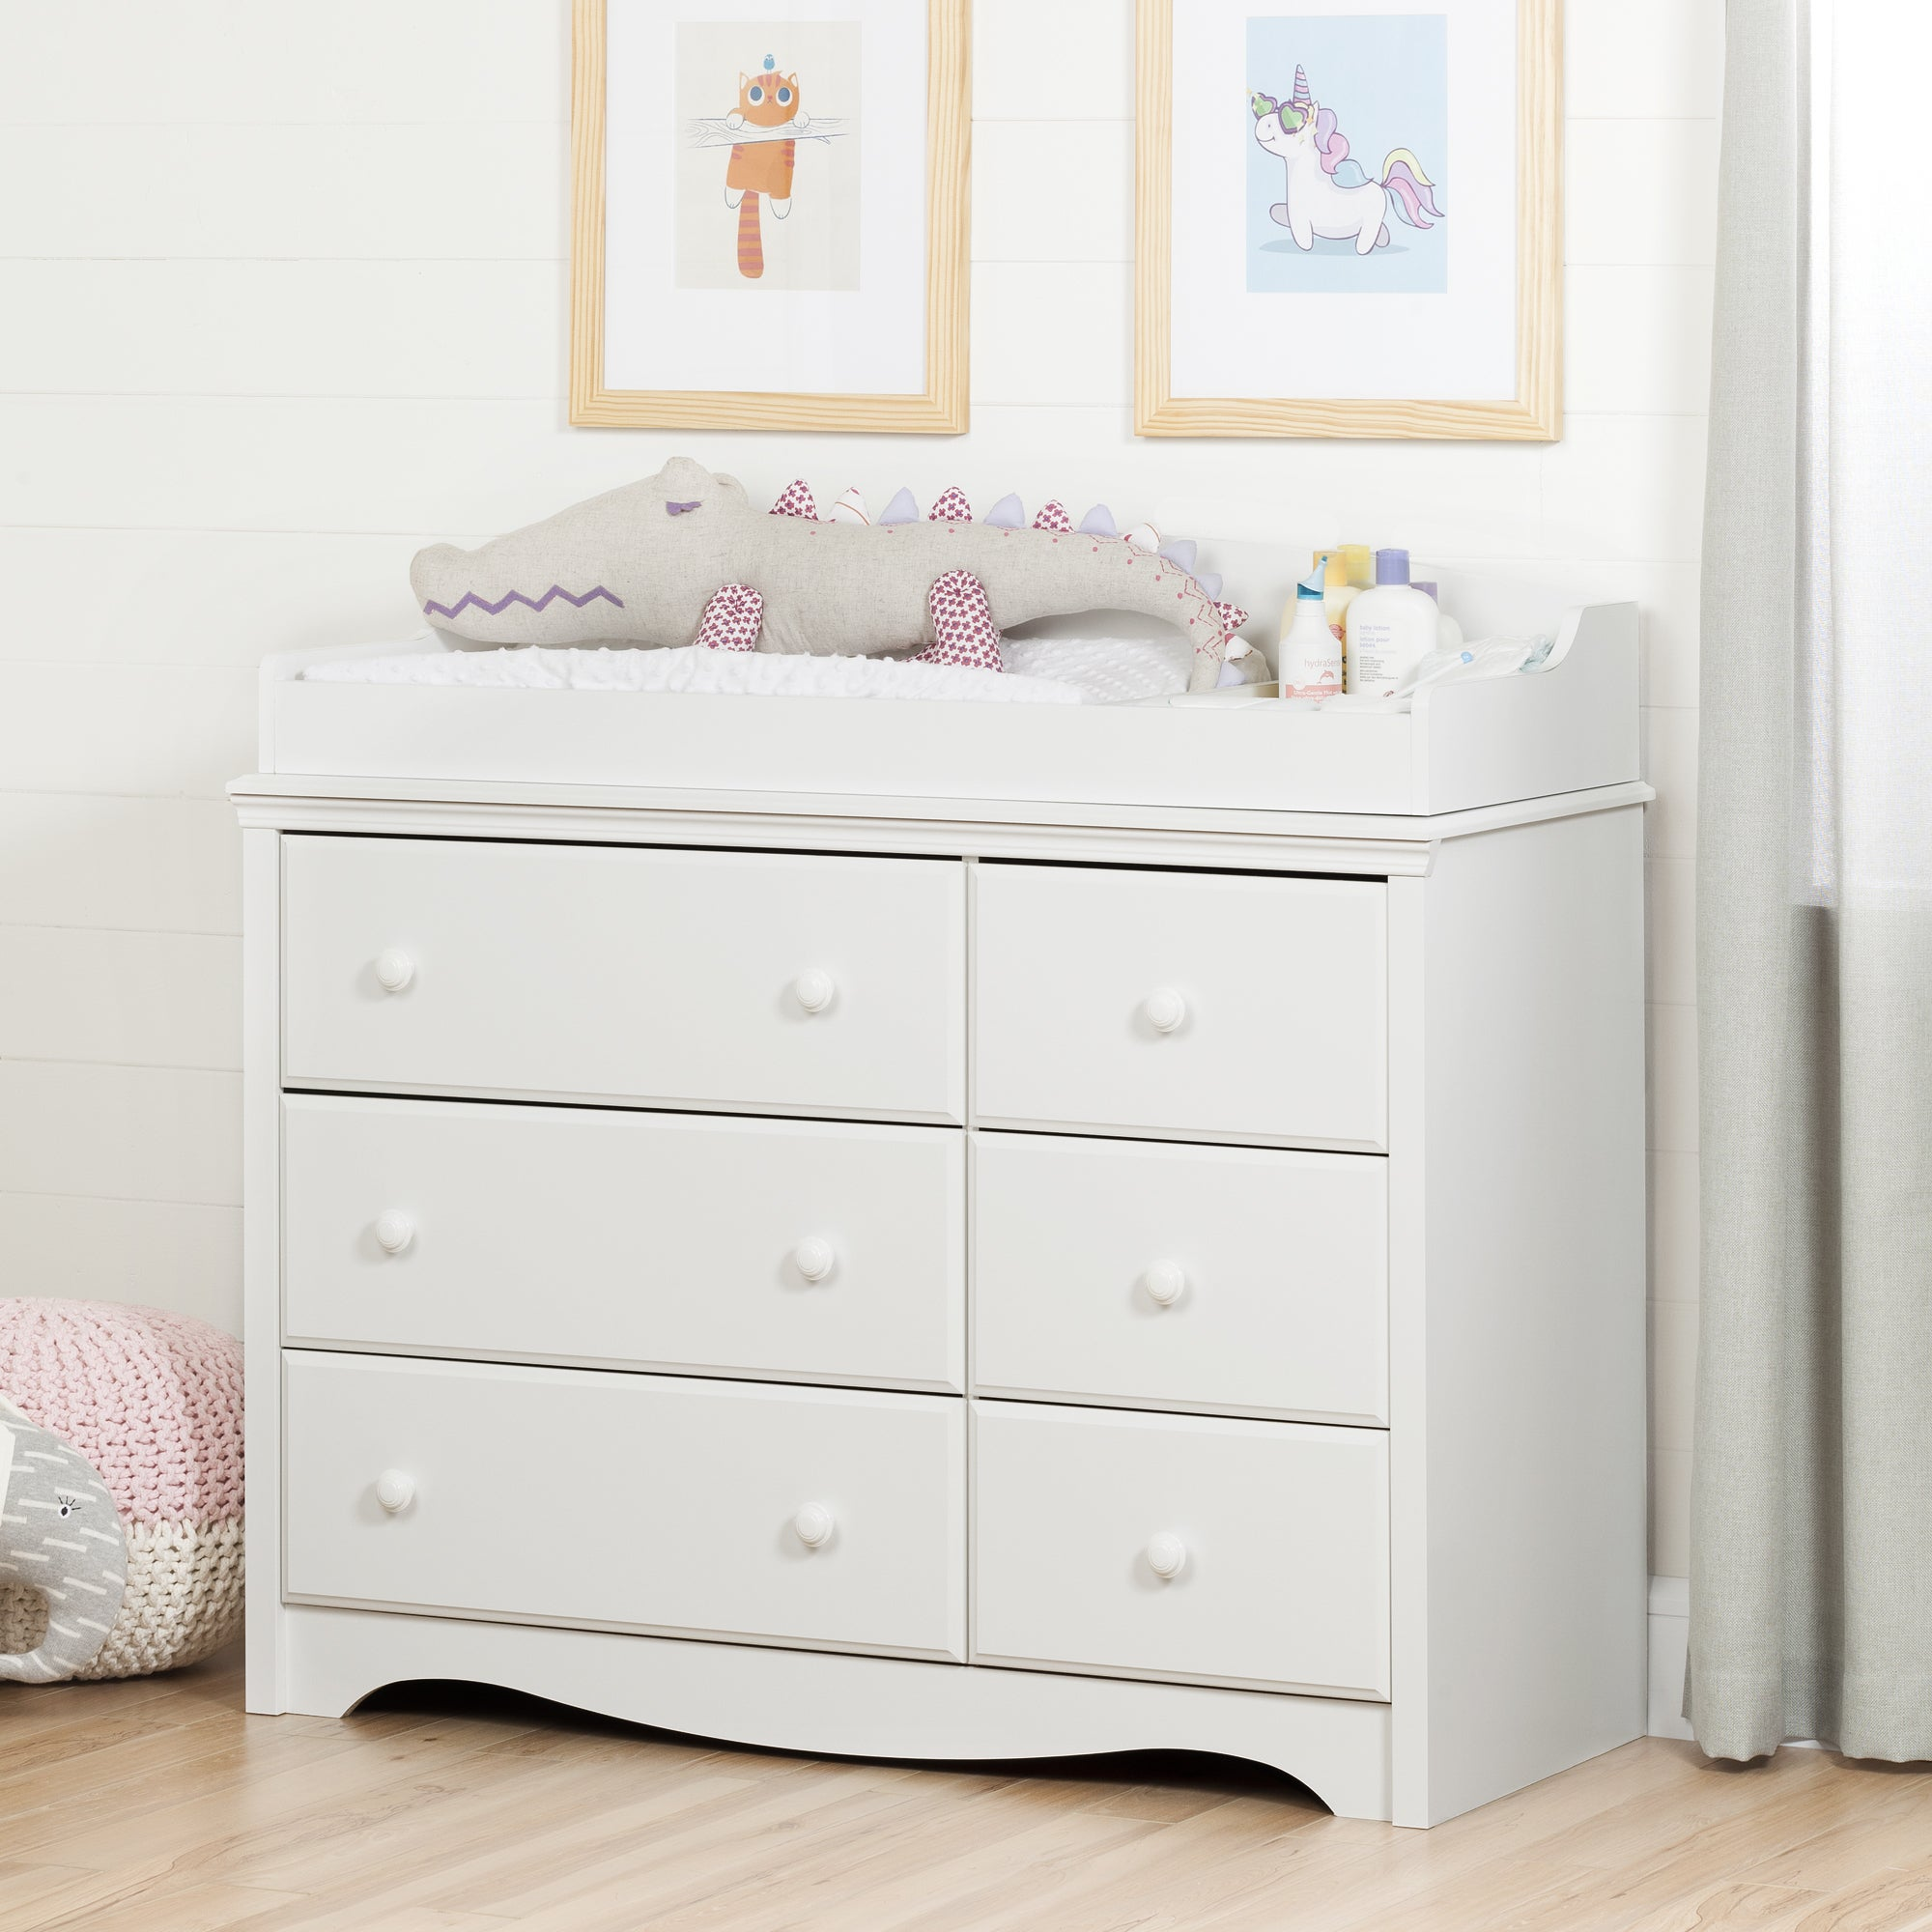 boy hemnes table nursery themed airplane striped with dresser s white pin ikea changing